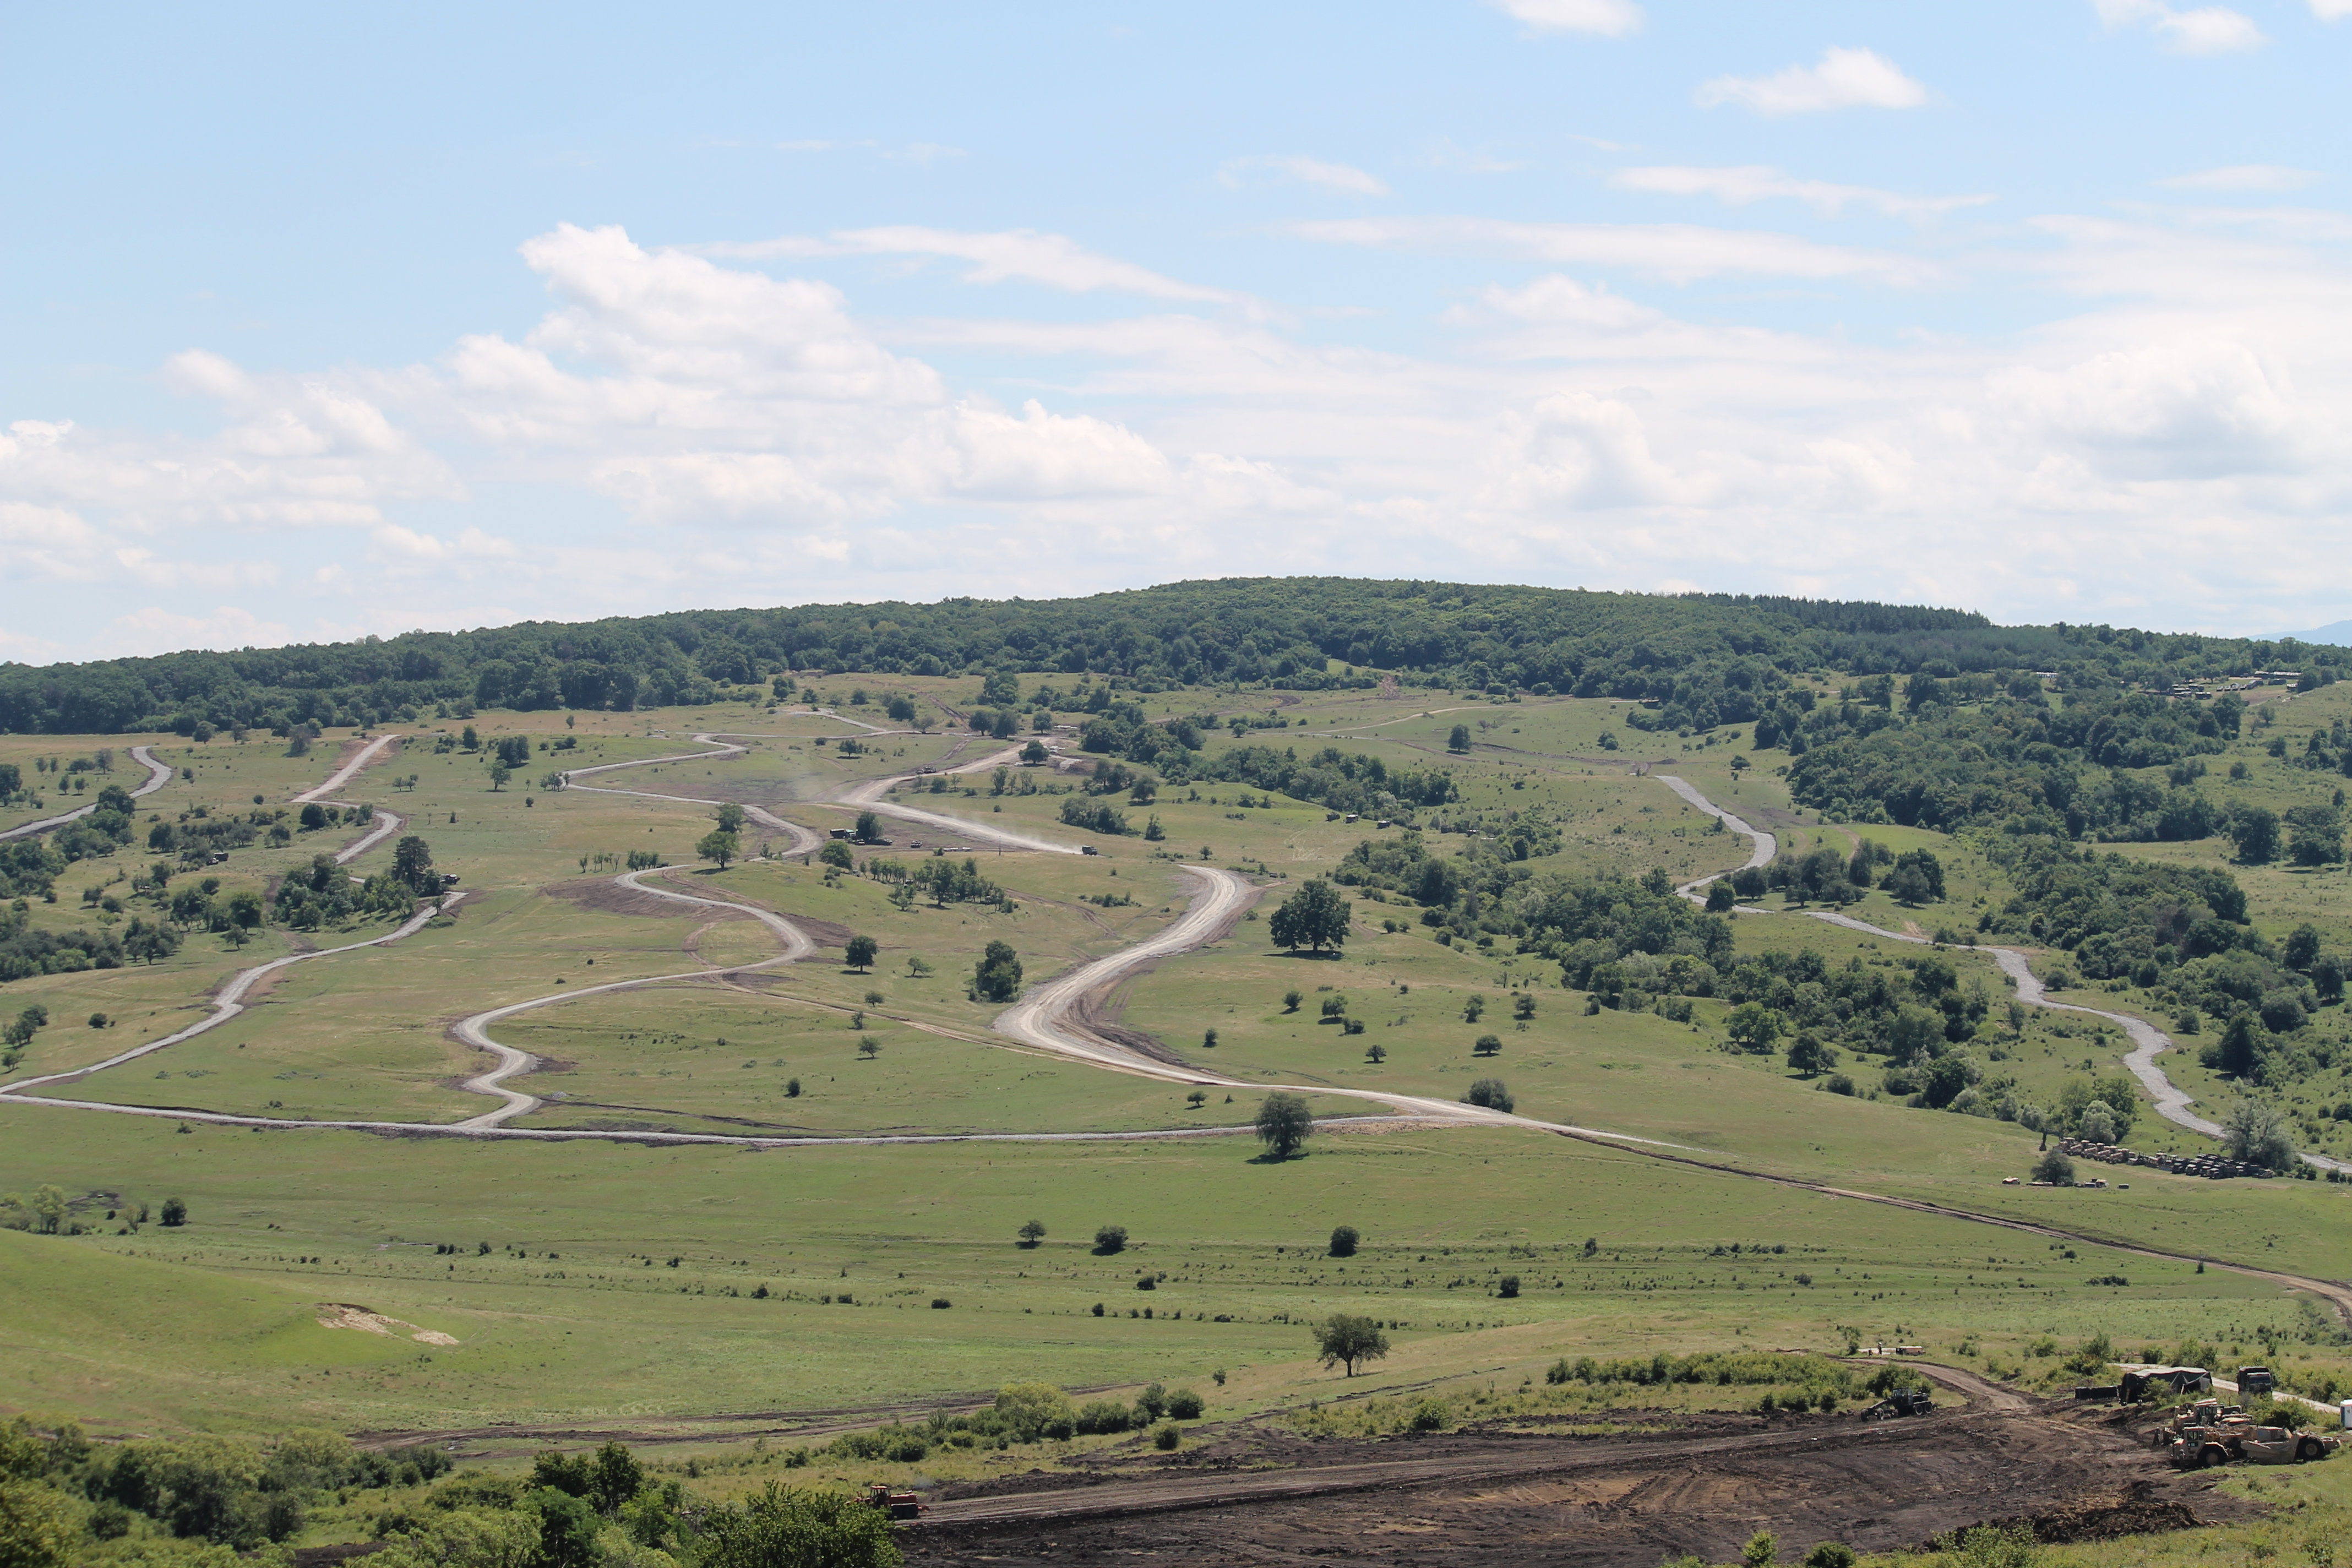 The nonstandard live fire range has five lanes for tanks, which meets both the NATO standard of requiring four lanes and the Romanian standard for five lanes, allowing flexibility for multinational training. The engineers are in the process of removing an enormous chunk of hill at the bottom of the range to accommodate the moving targets and will remove roughly 153 cubic yards of soil when finished. (Jen Judson/Staff)